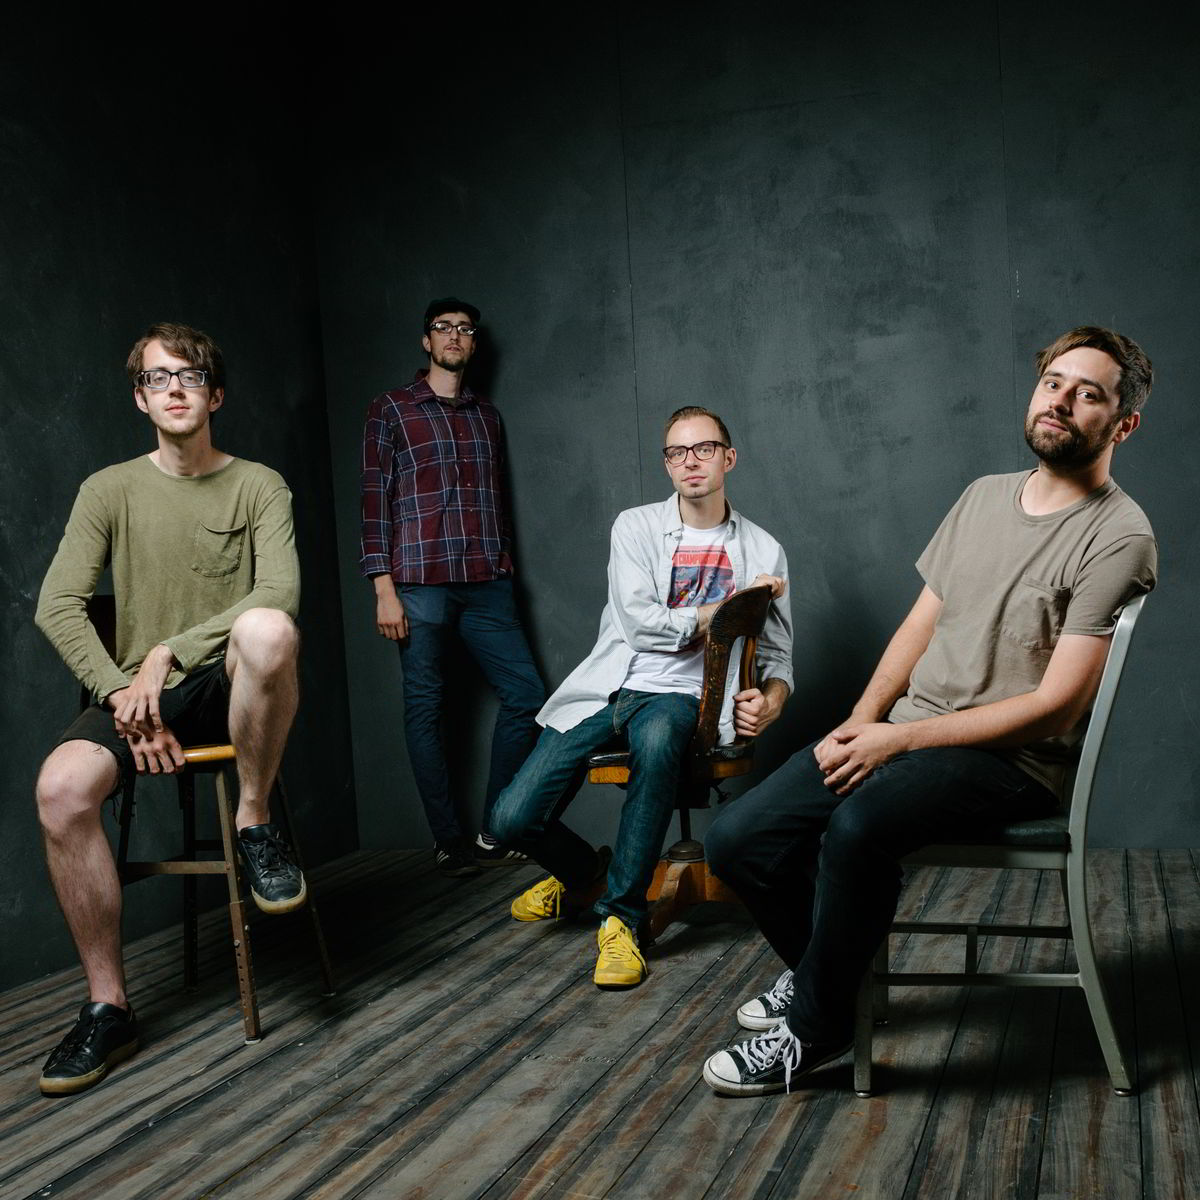 cloudnothings2017_pressphoto